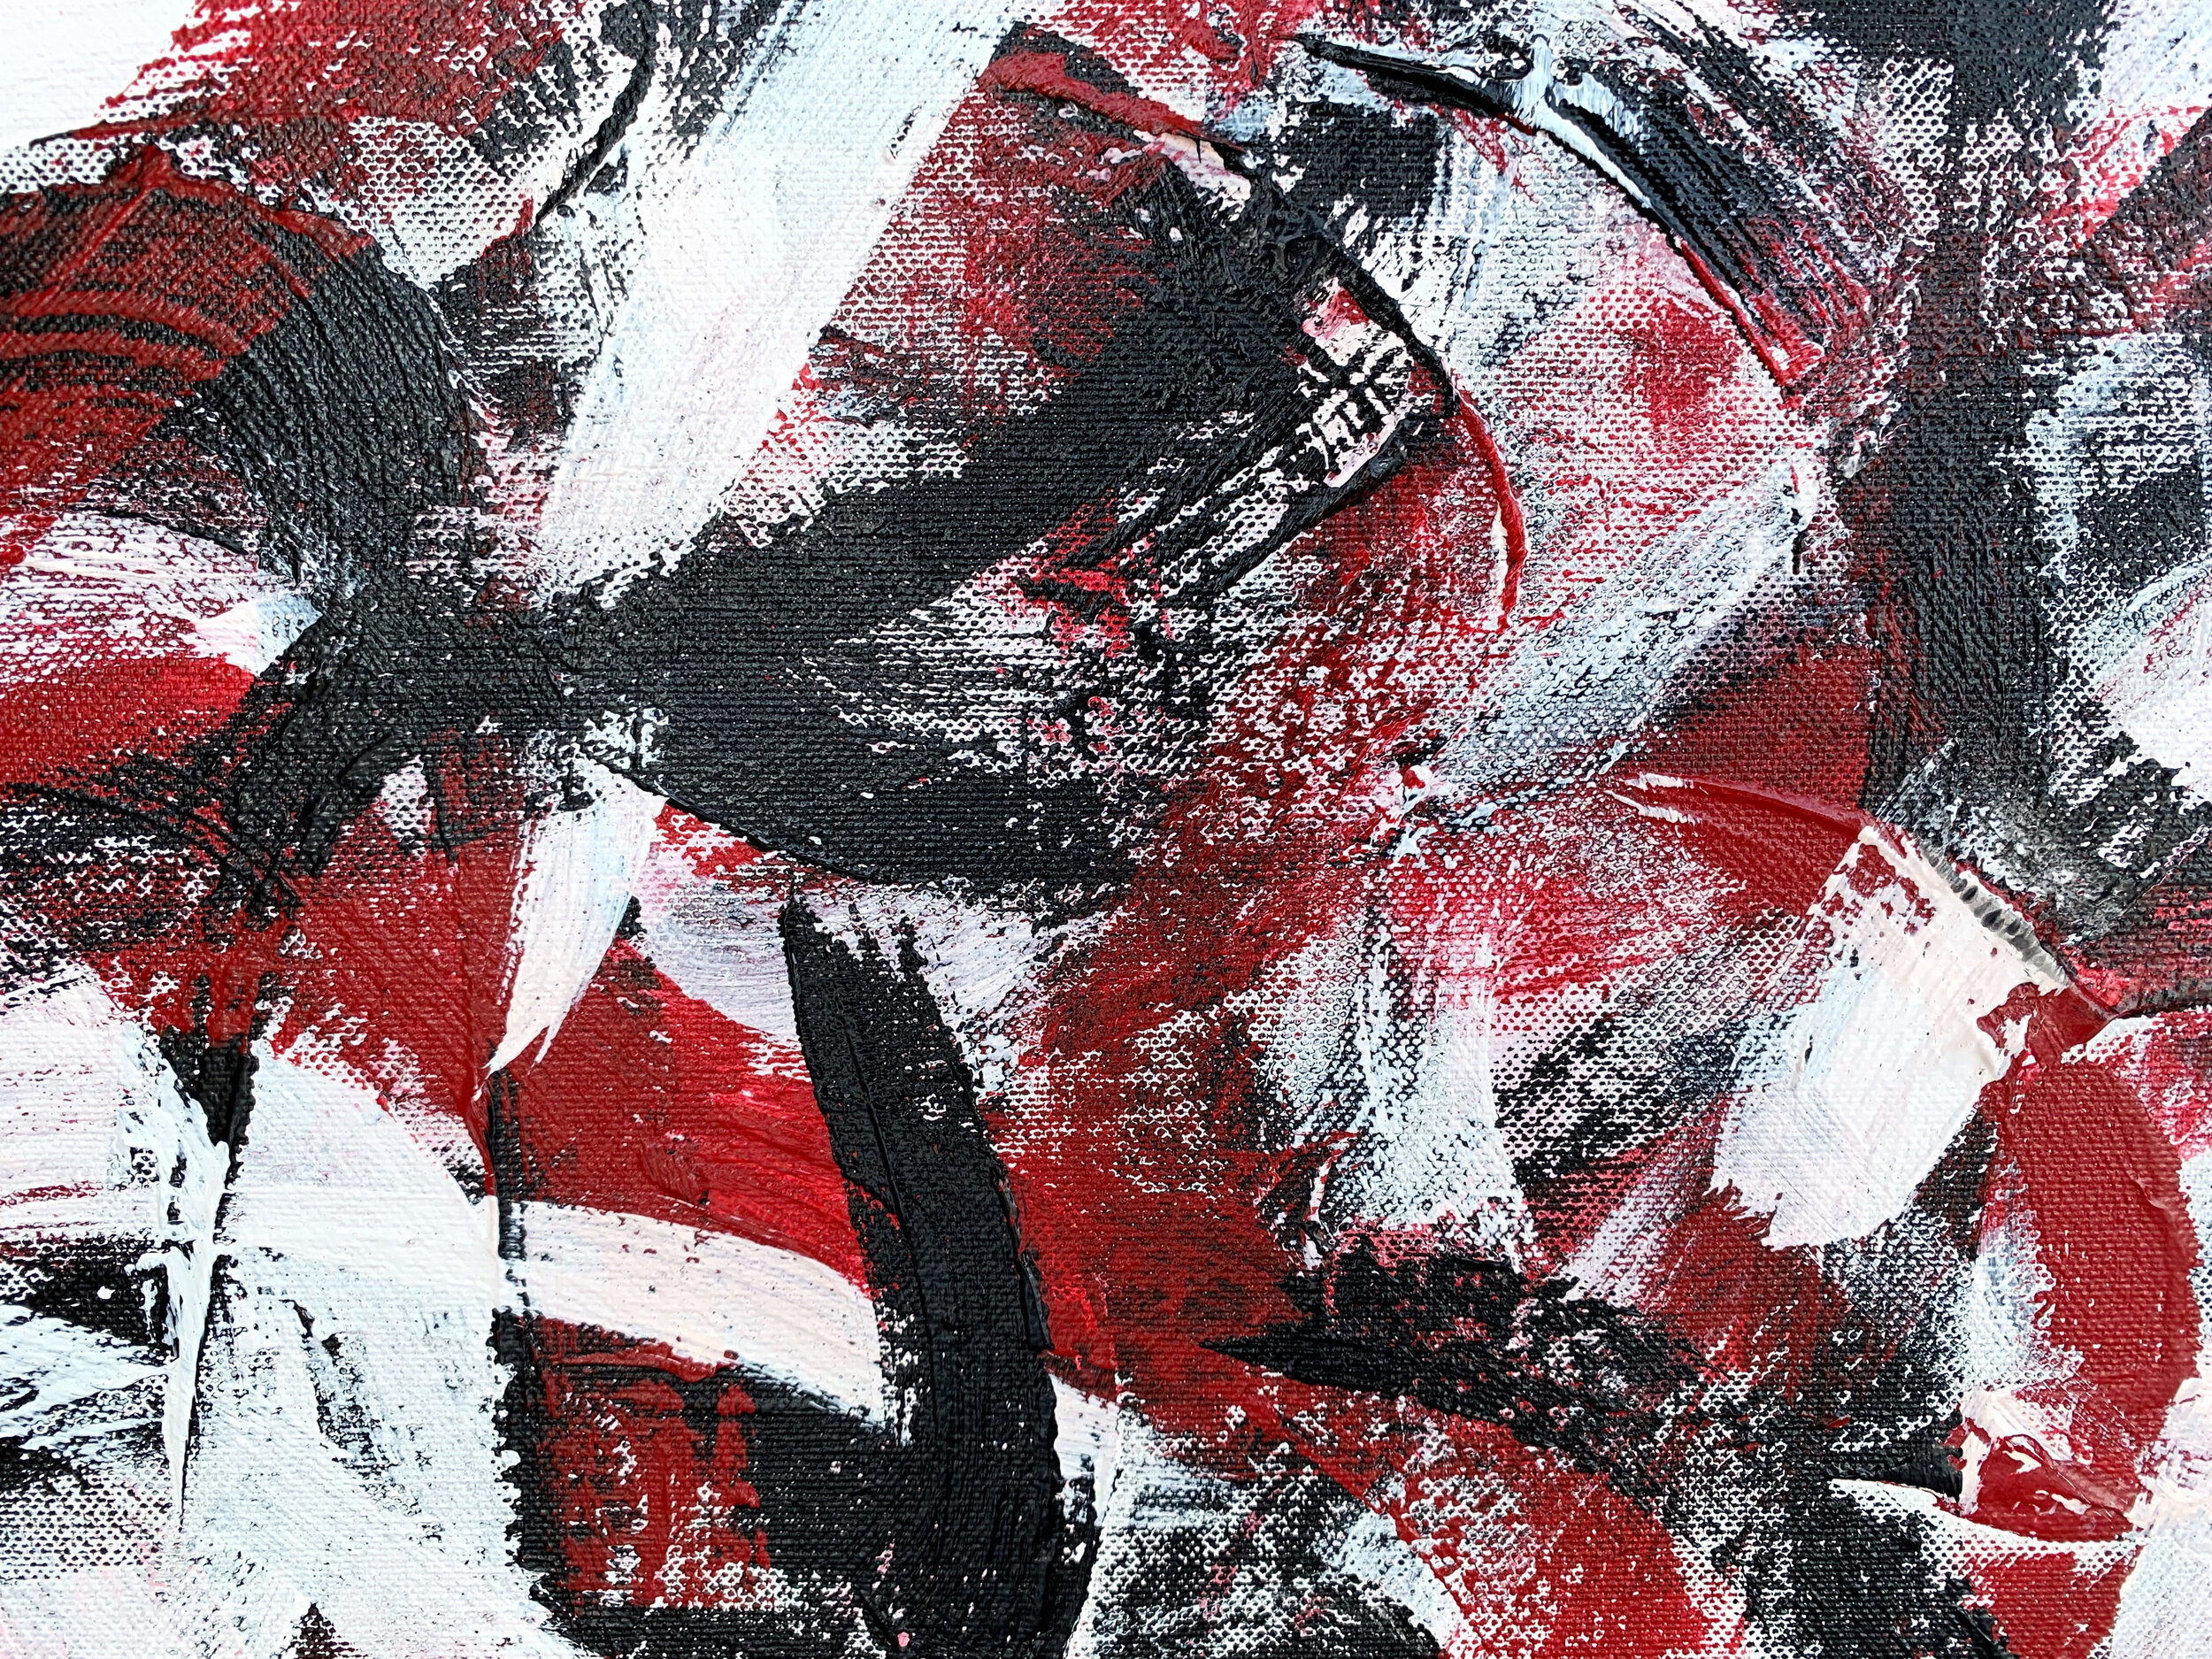 abstract-expressionism-painting-shengming-de-xiansuo-detail-1.jpg